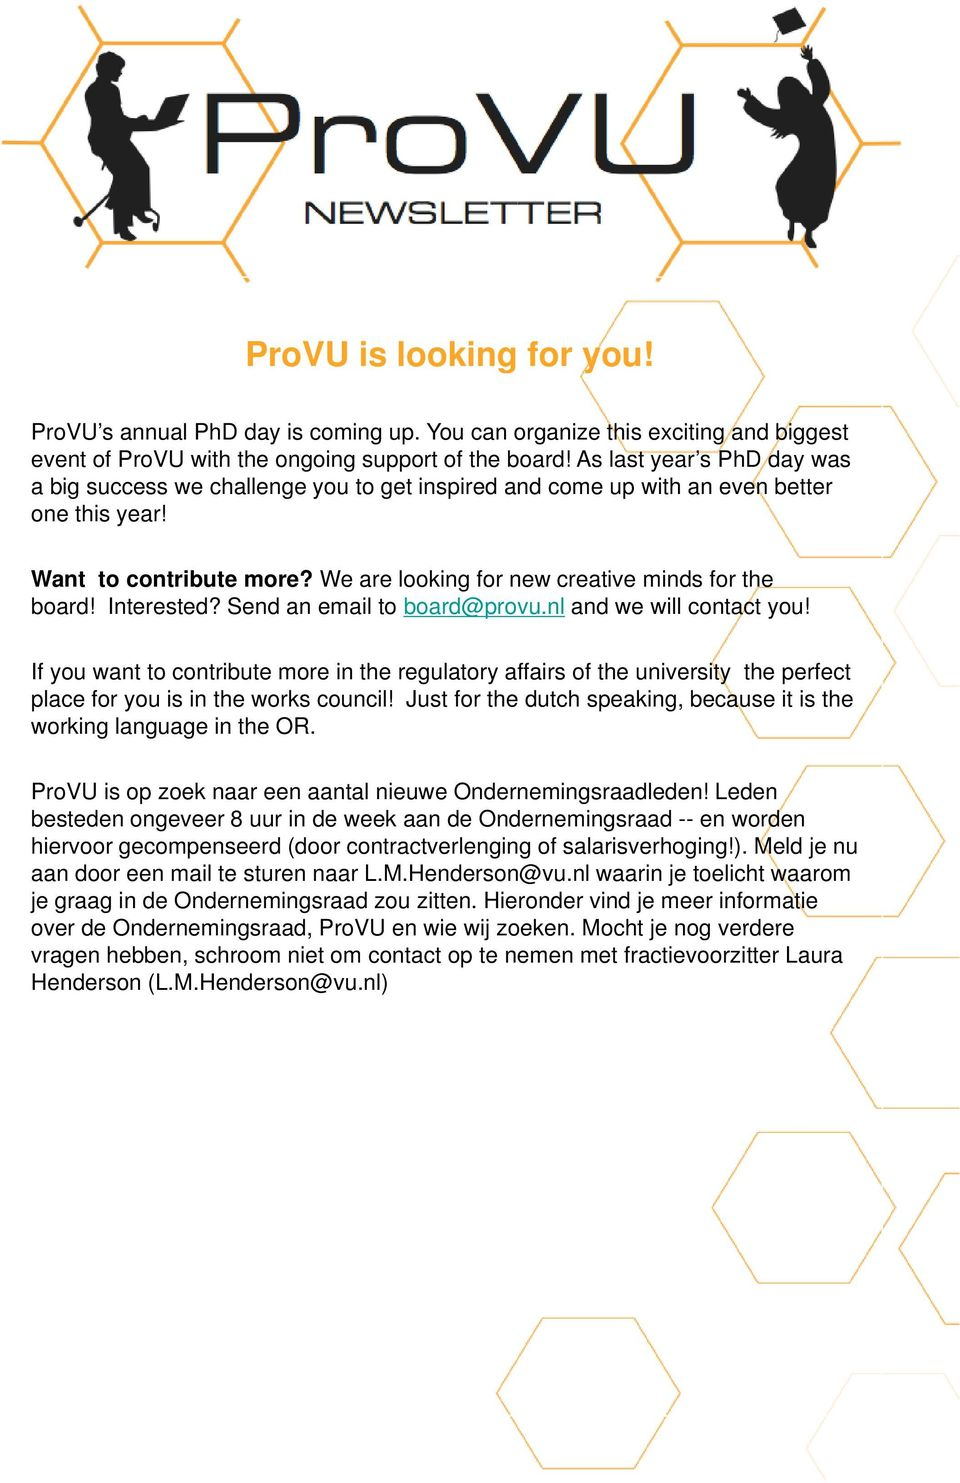 Interested? Send an email to board@provu.nl and we will contact you! If you want to contribute more in the regulatory affairs of the university the perfect place for you is in the works council!